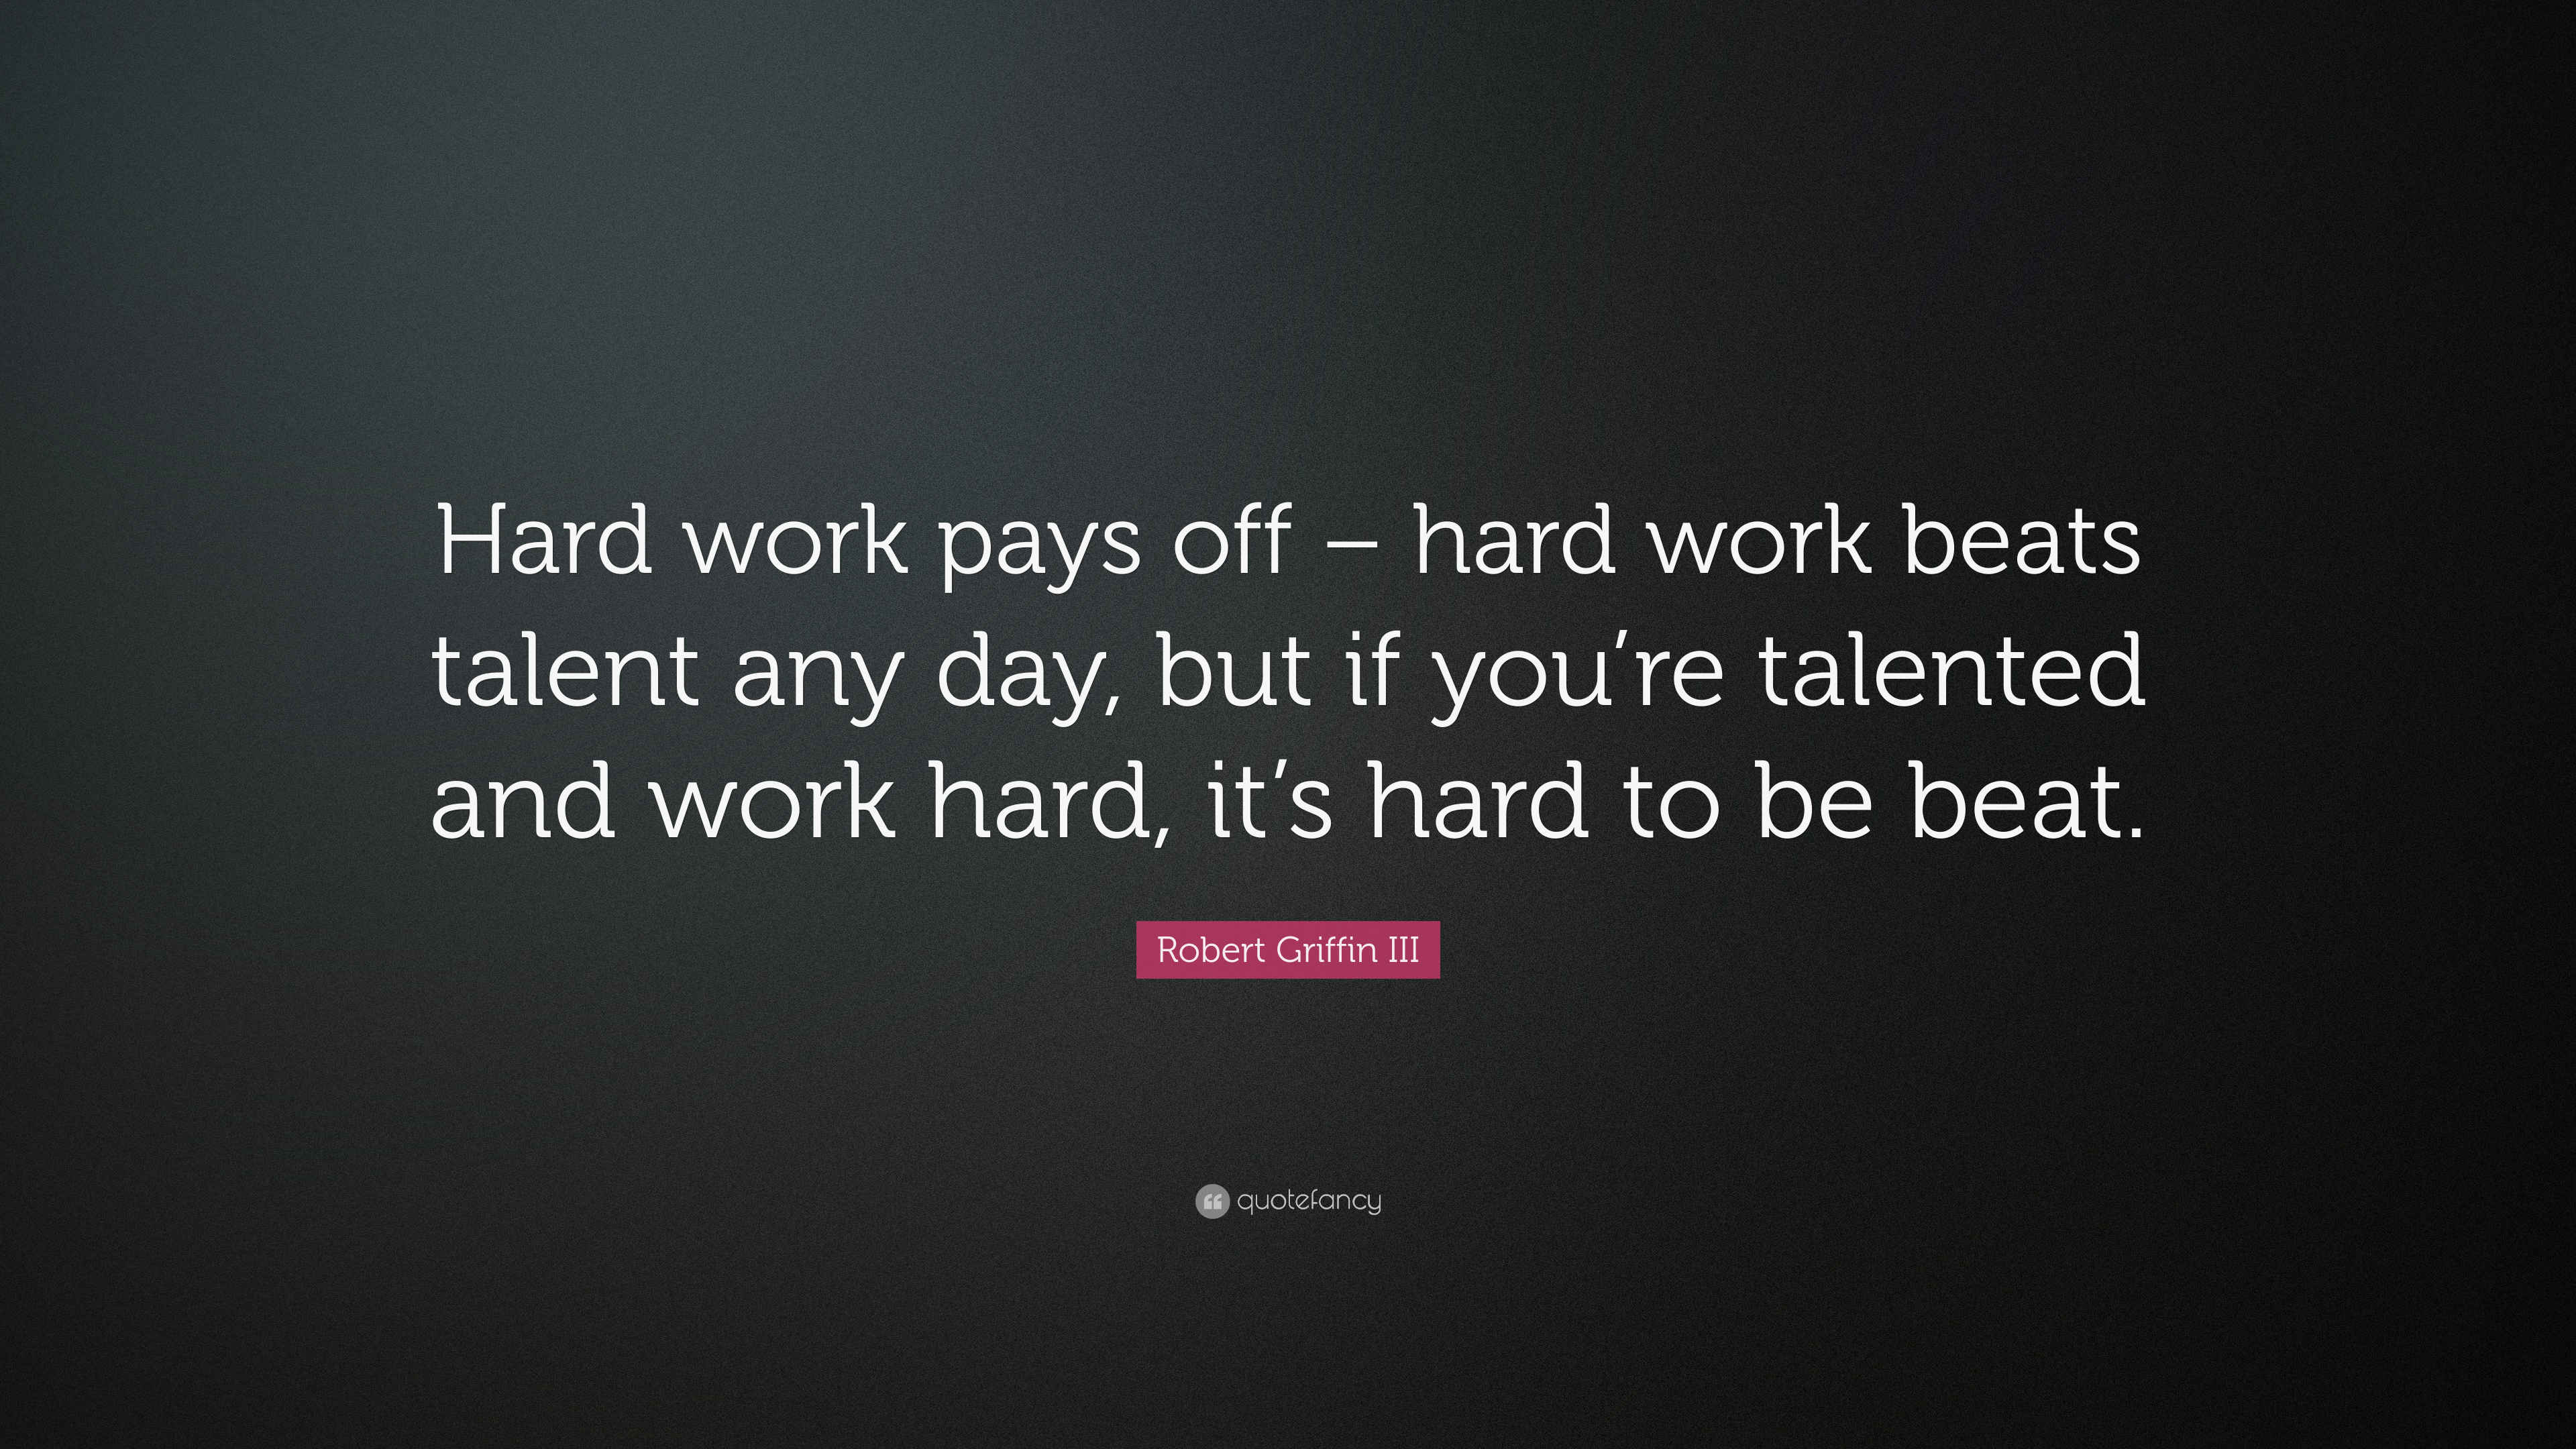 Lovely Robert Griffin III Quote: U201cHard Work Pays Off U2013 Hard Work Beats Talent Any